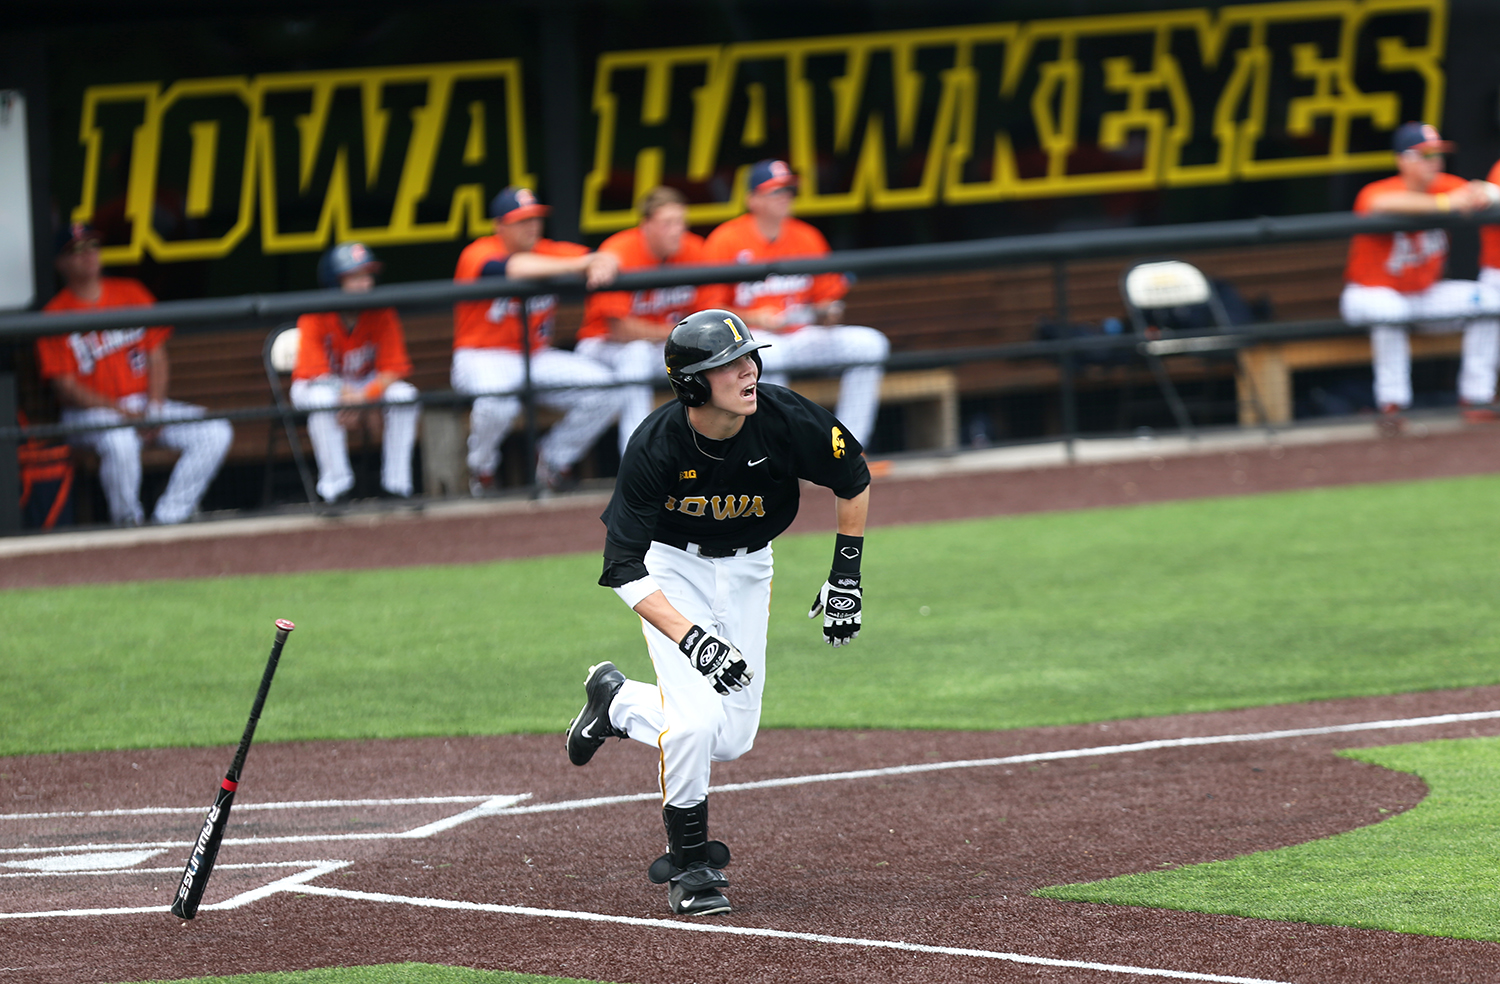 Iowa infielder Jake Yacinich runs to first base in Duane Banks Field on Saturday, May 10, 2014. The Fighting Illini defeated the Hawkeyes in the second game, 5-1. (The Daily Iowan/Allison Orvis)